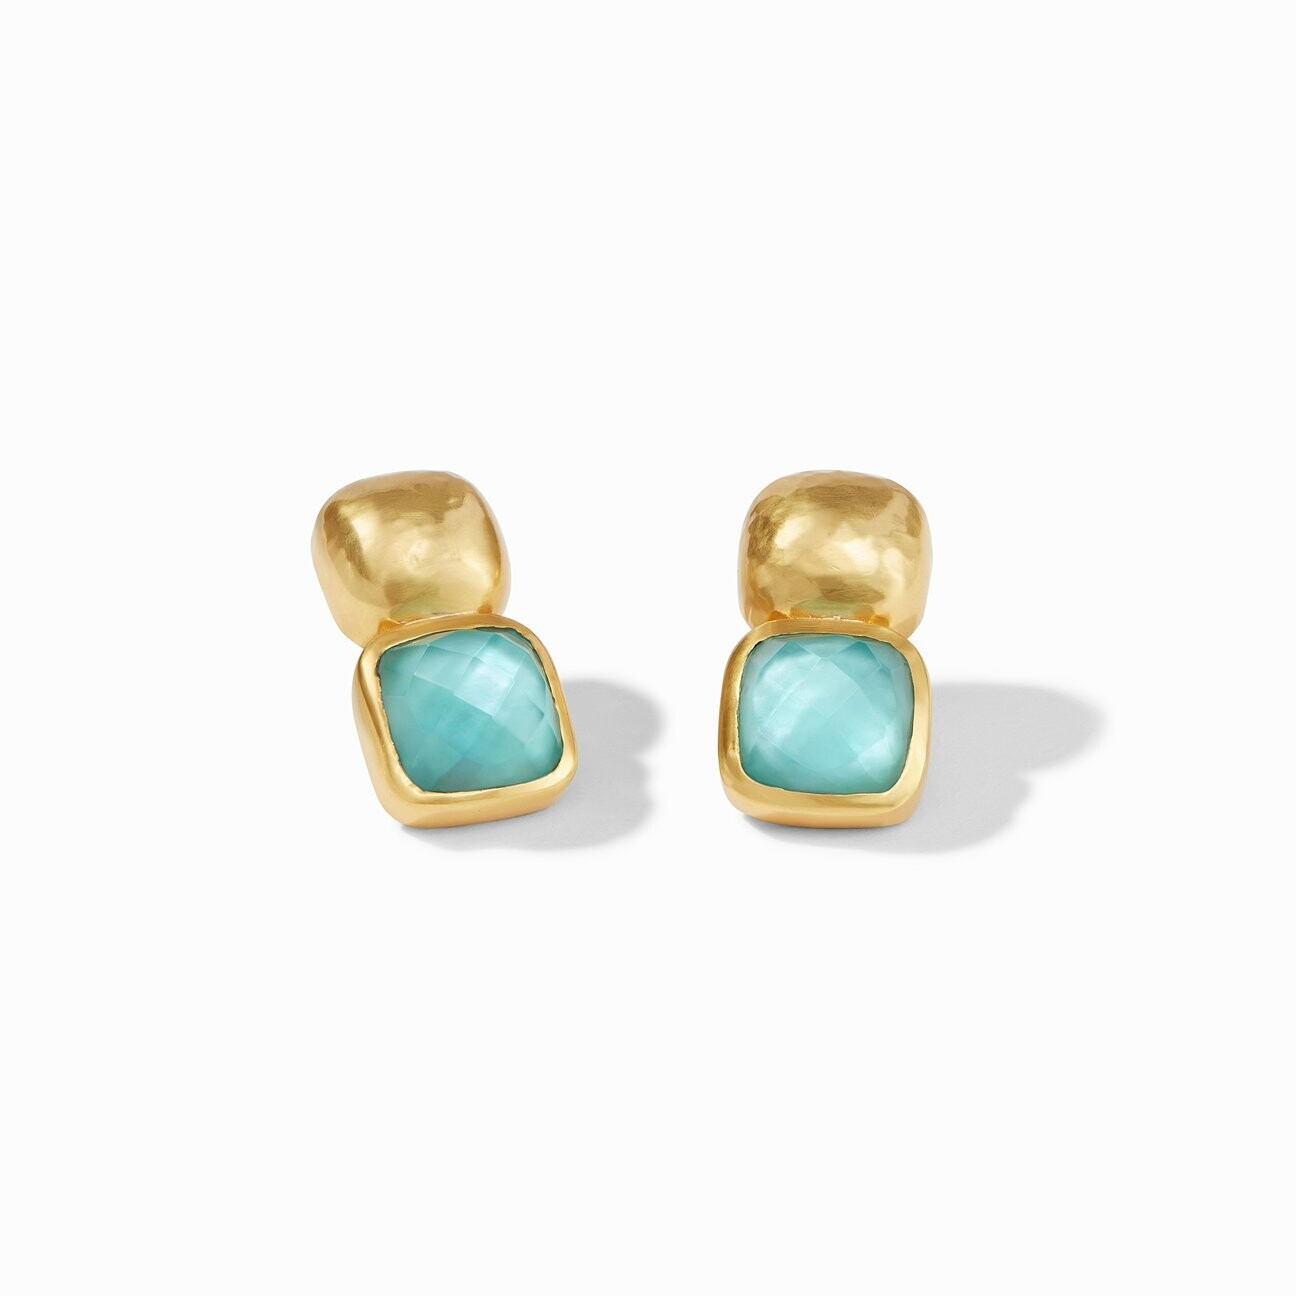 JULIE VOS Catalina Earring